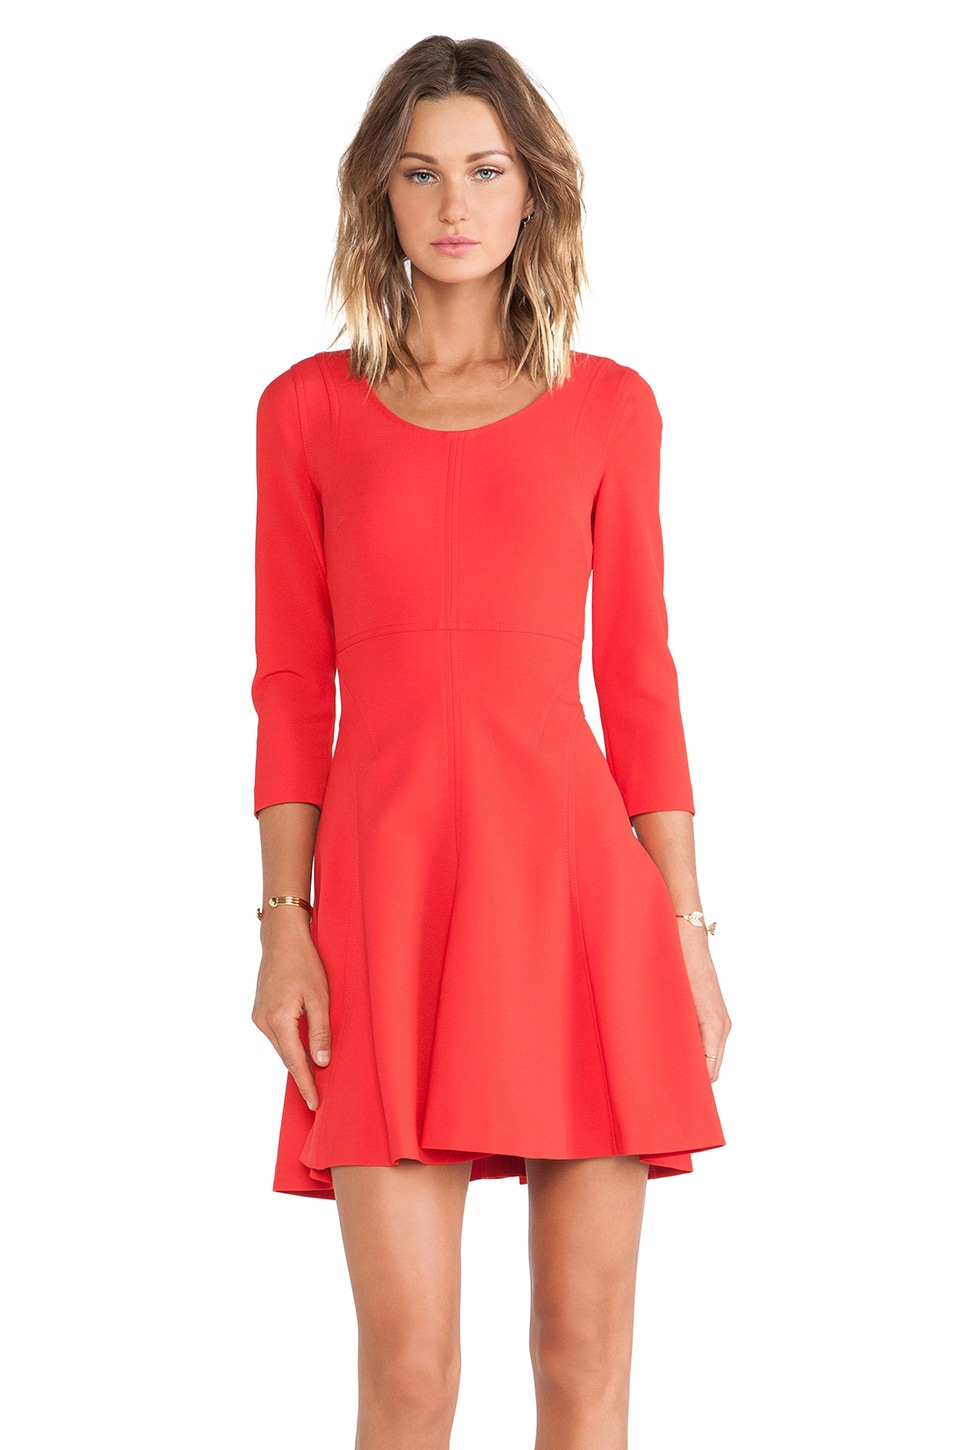 Diane von Furstenberg A Line Dress in Poppy